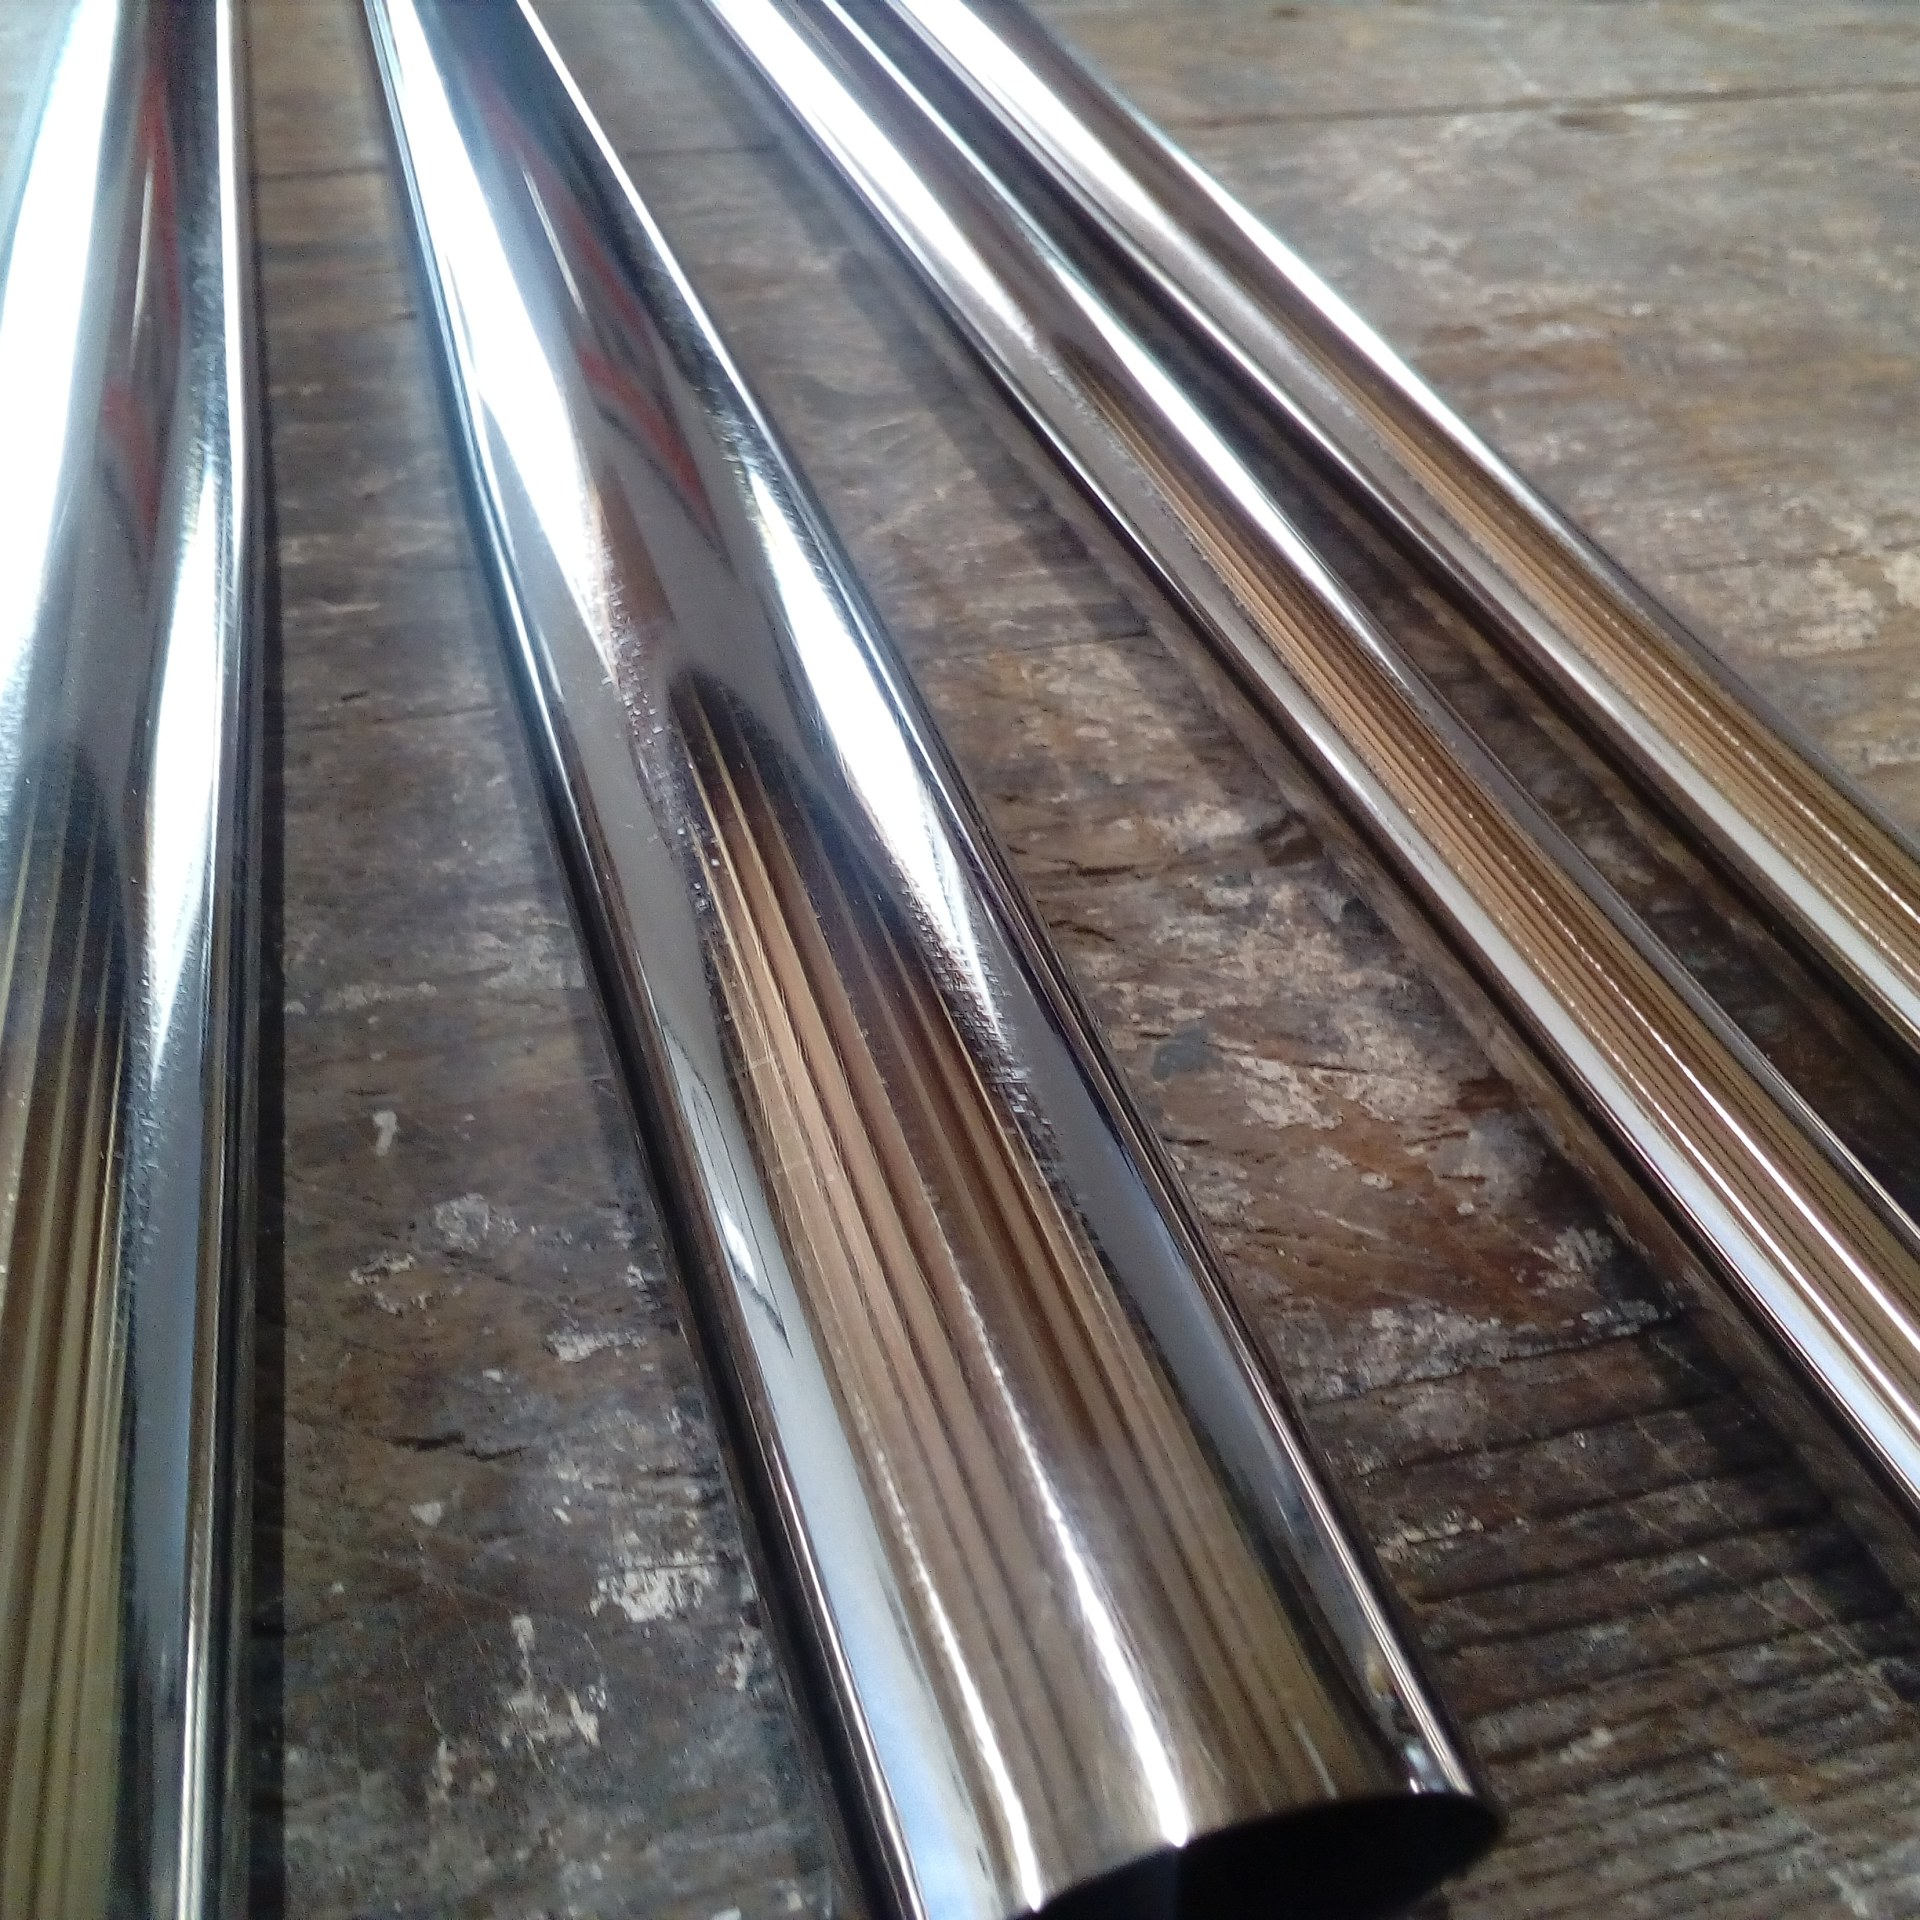 Polished Reynolds 953 Stainless tubing